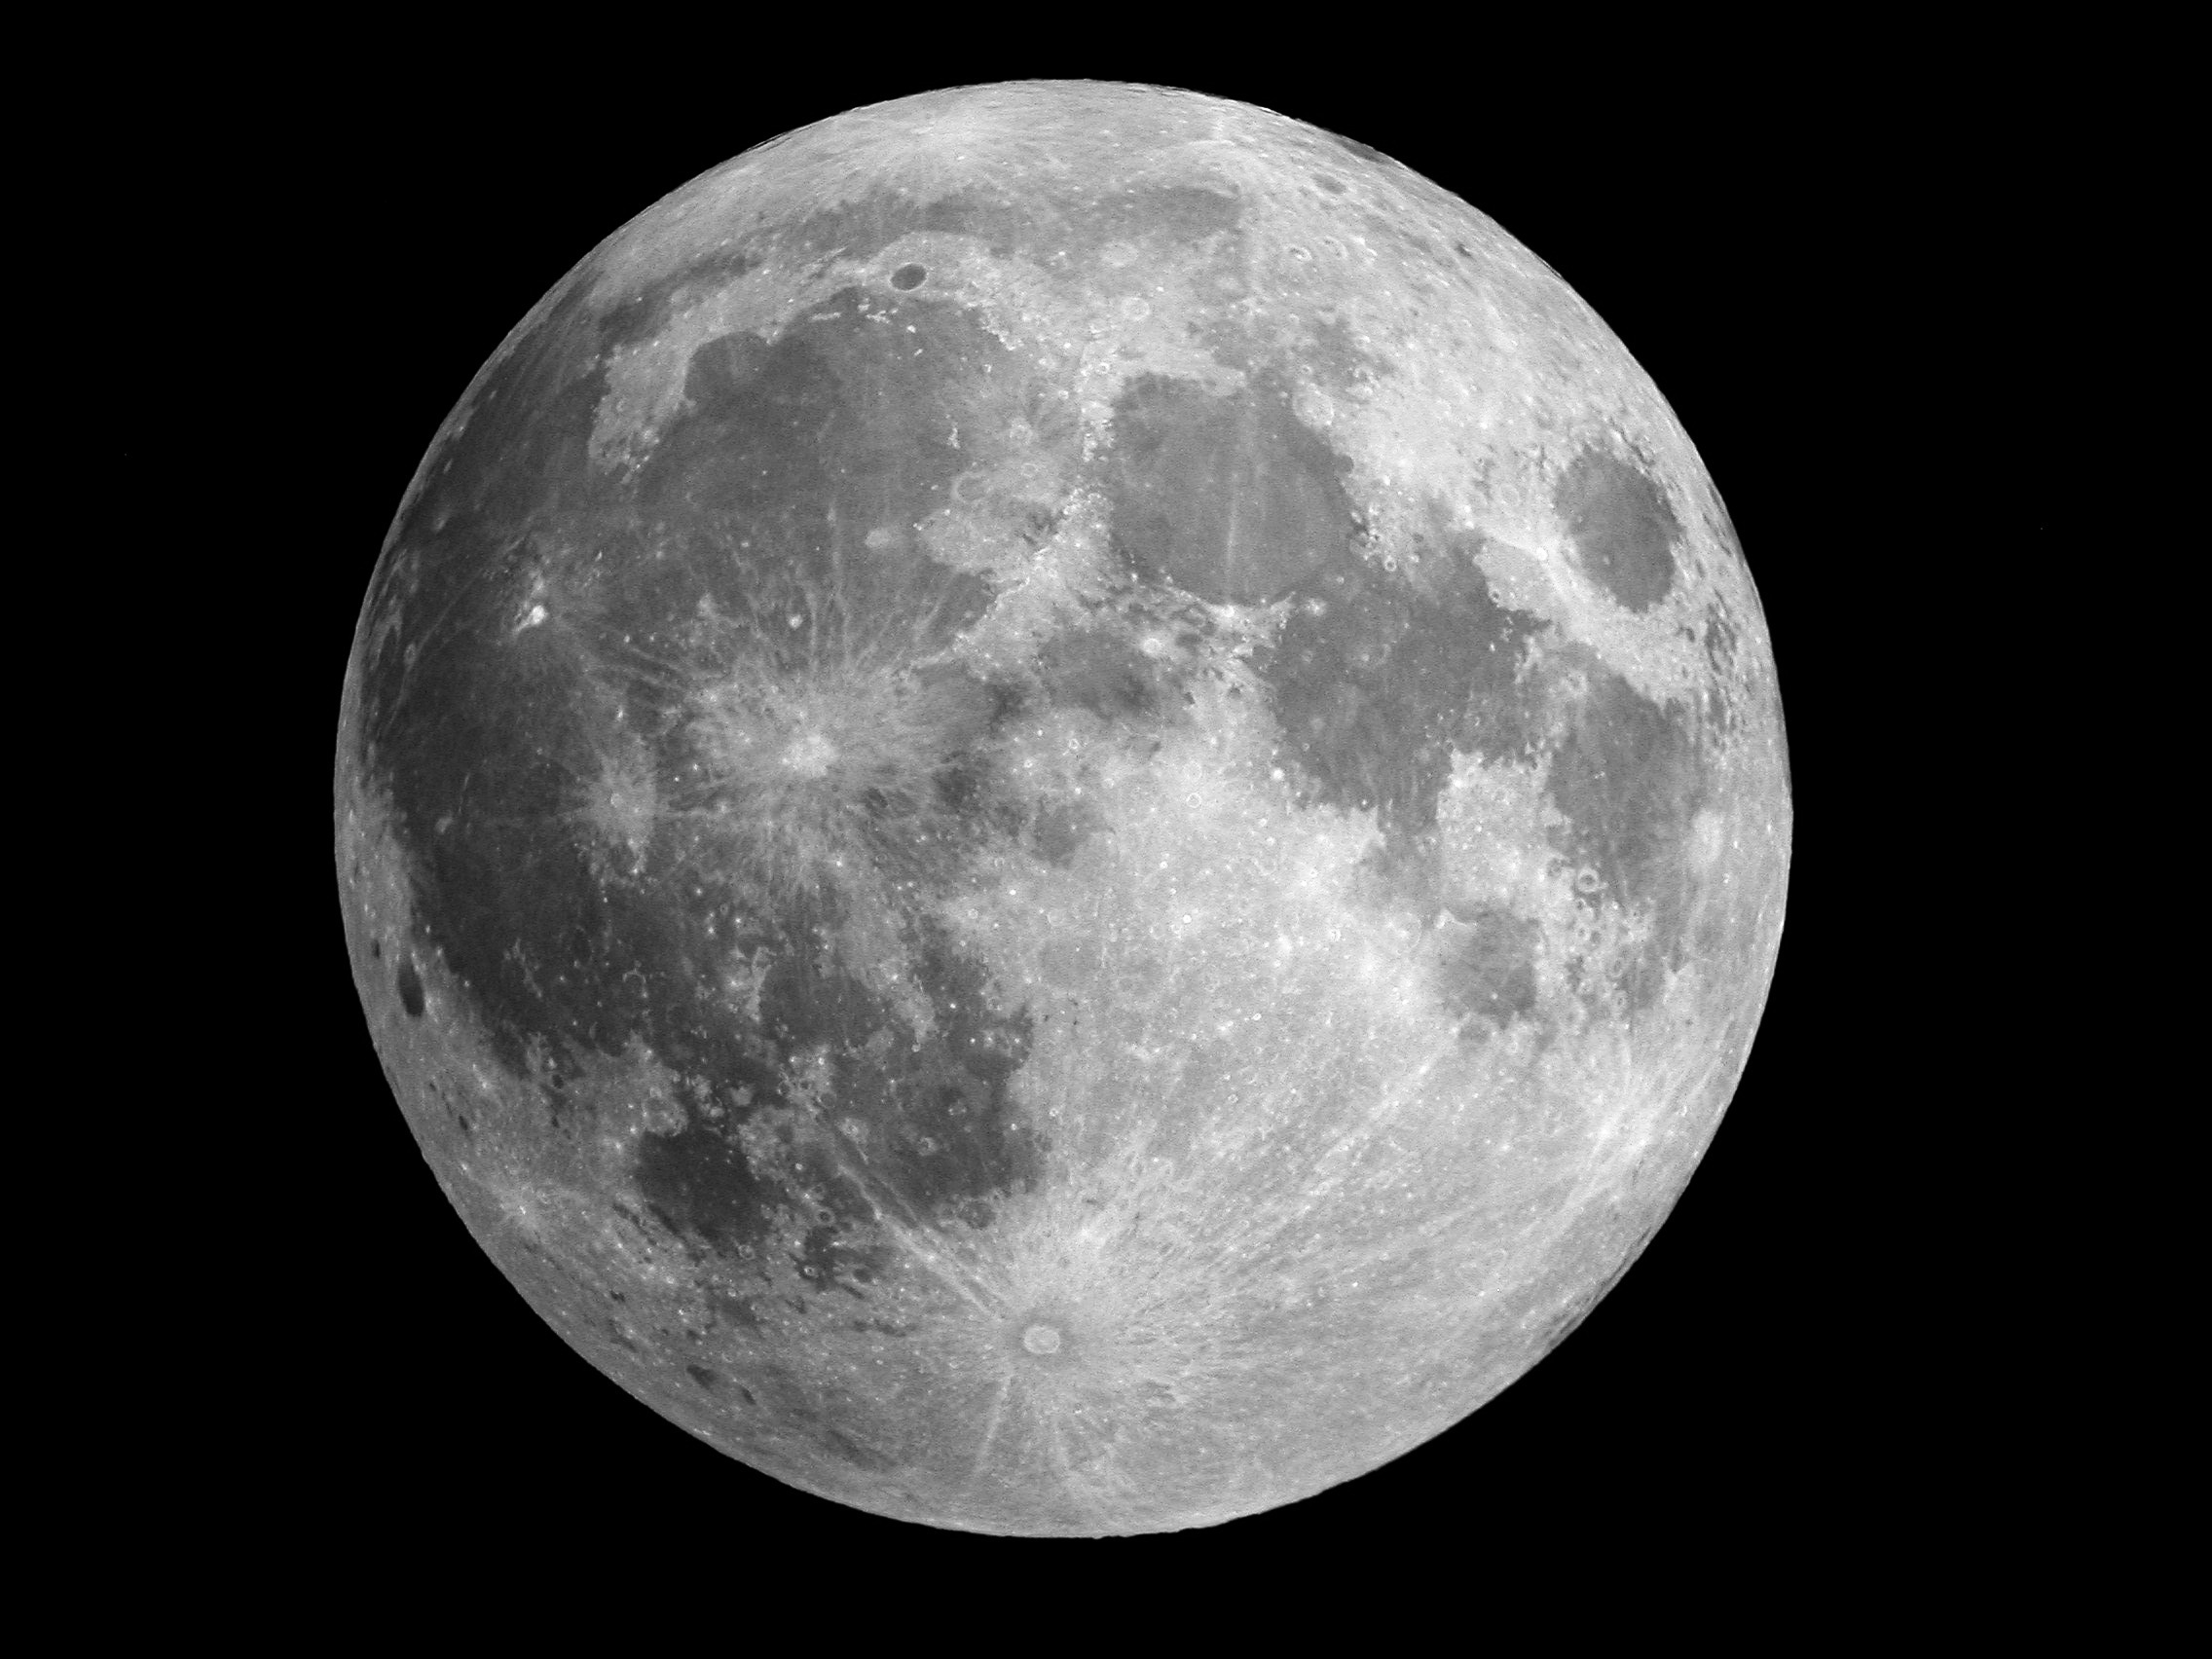 Full Moon Drawing Black And White January 29th Full Moon 10 Minute Astronomy